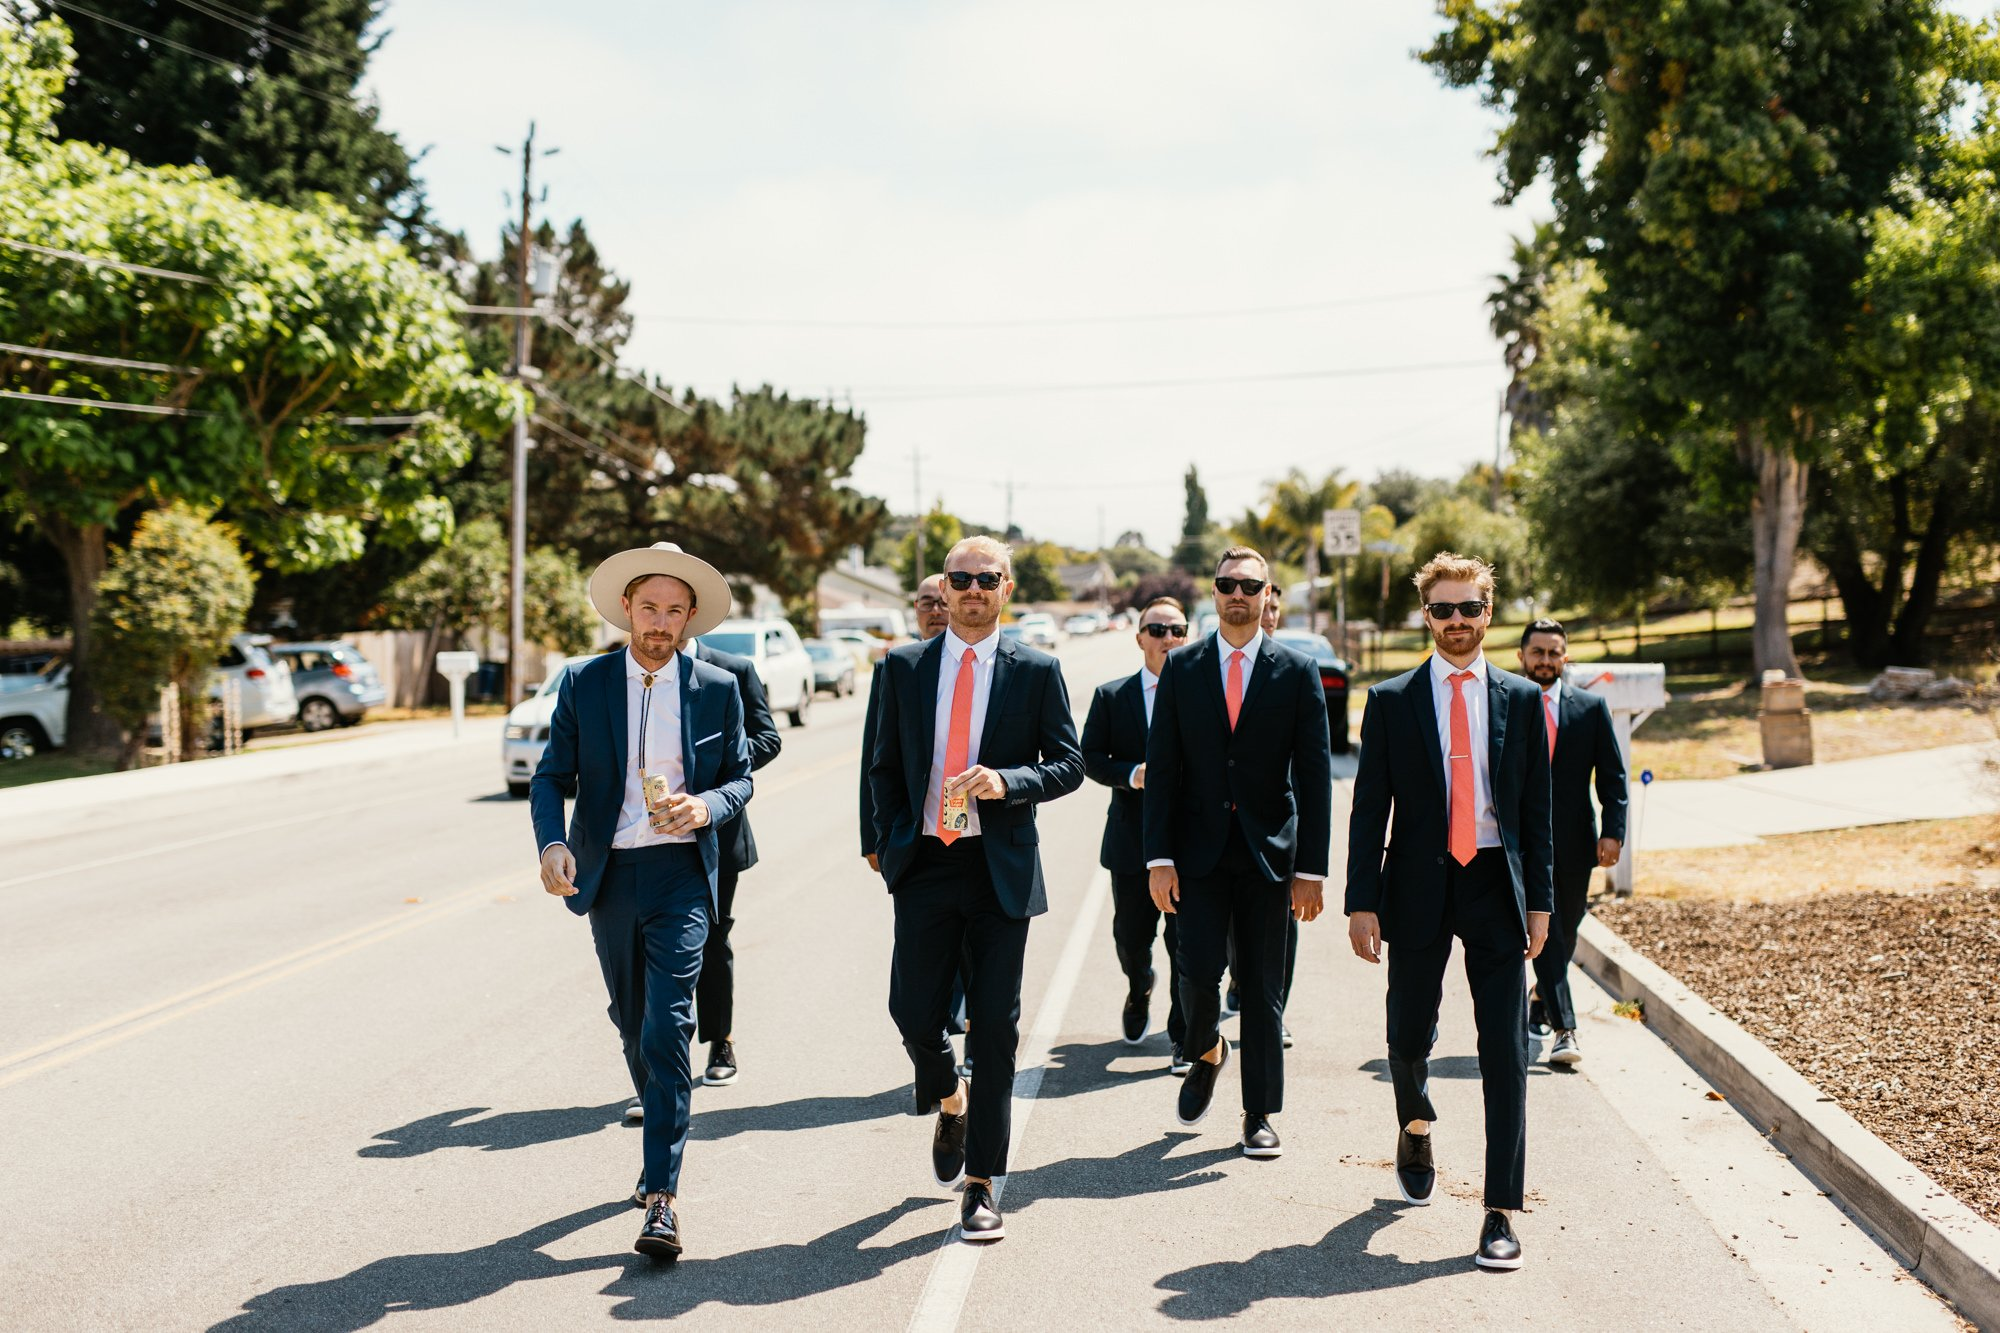 san luis obispo wedding groomsmen